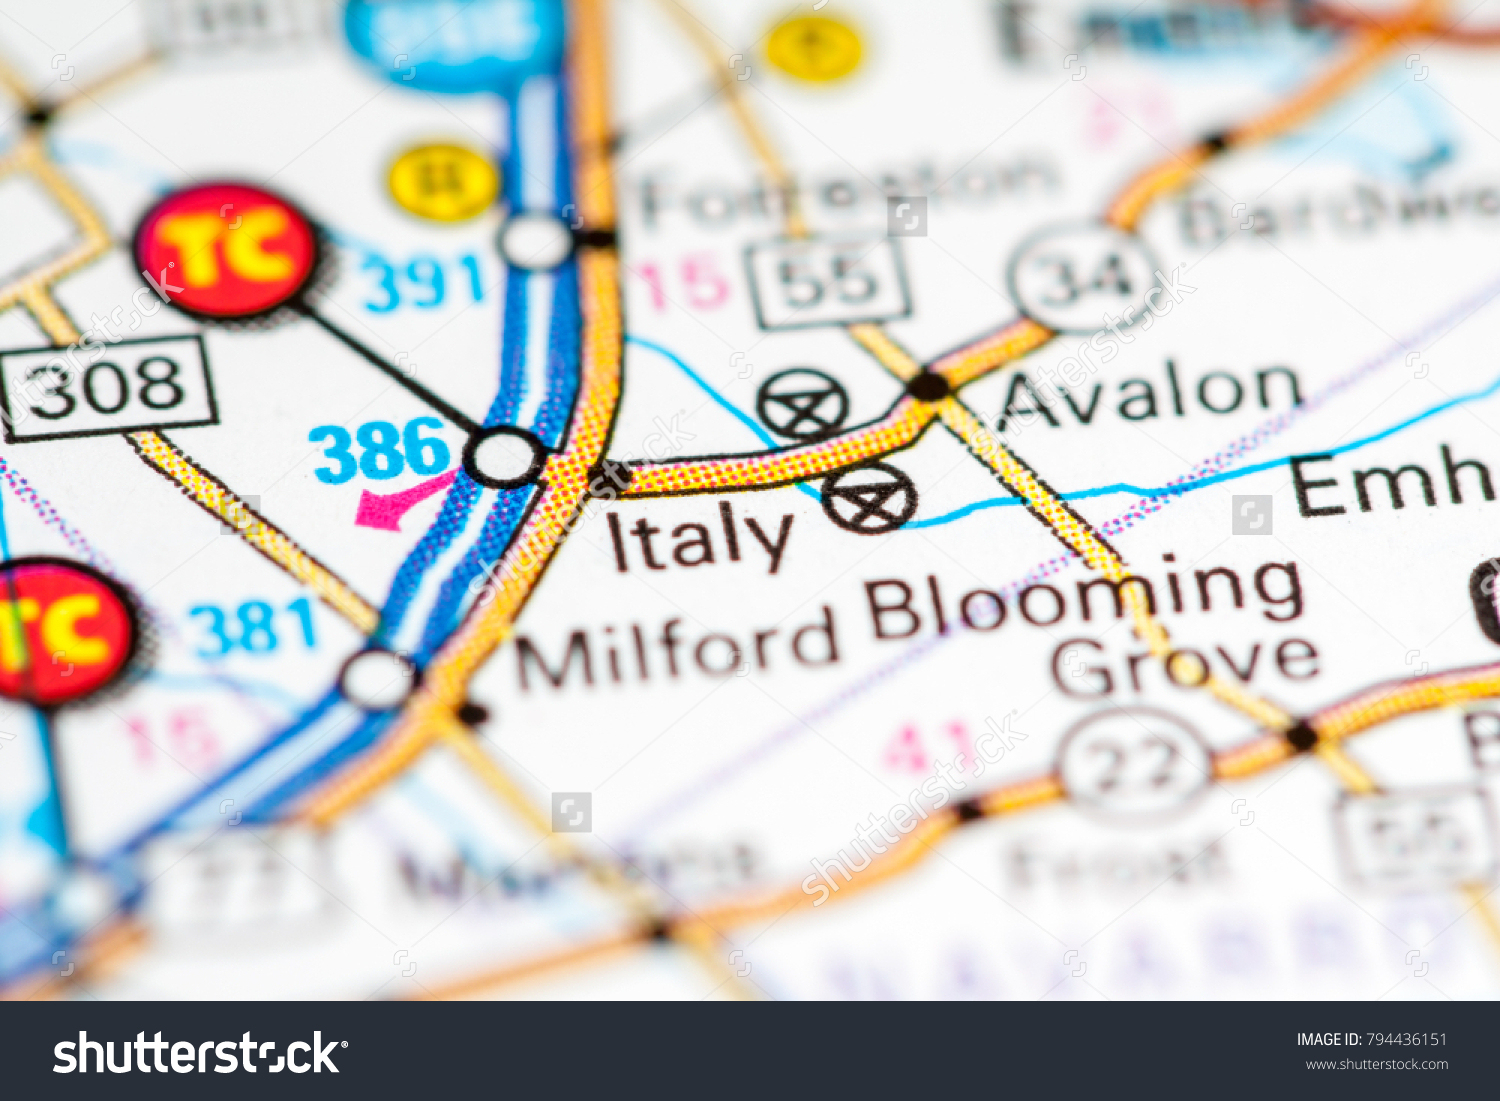 Italy Texas Usa On Map Stock Photo (Edit Now) 794436151 - Shutterstock - Italy Texas Map